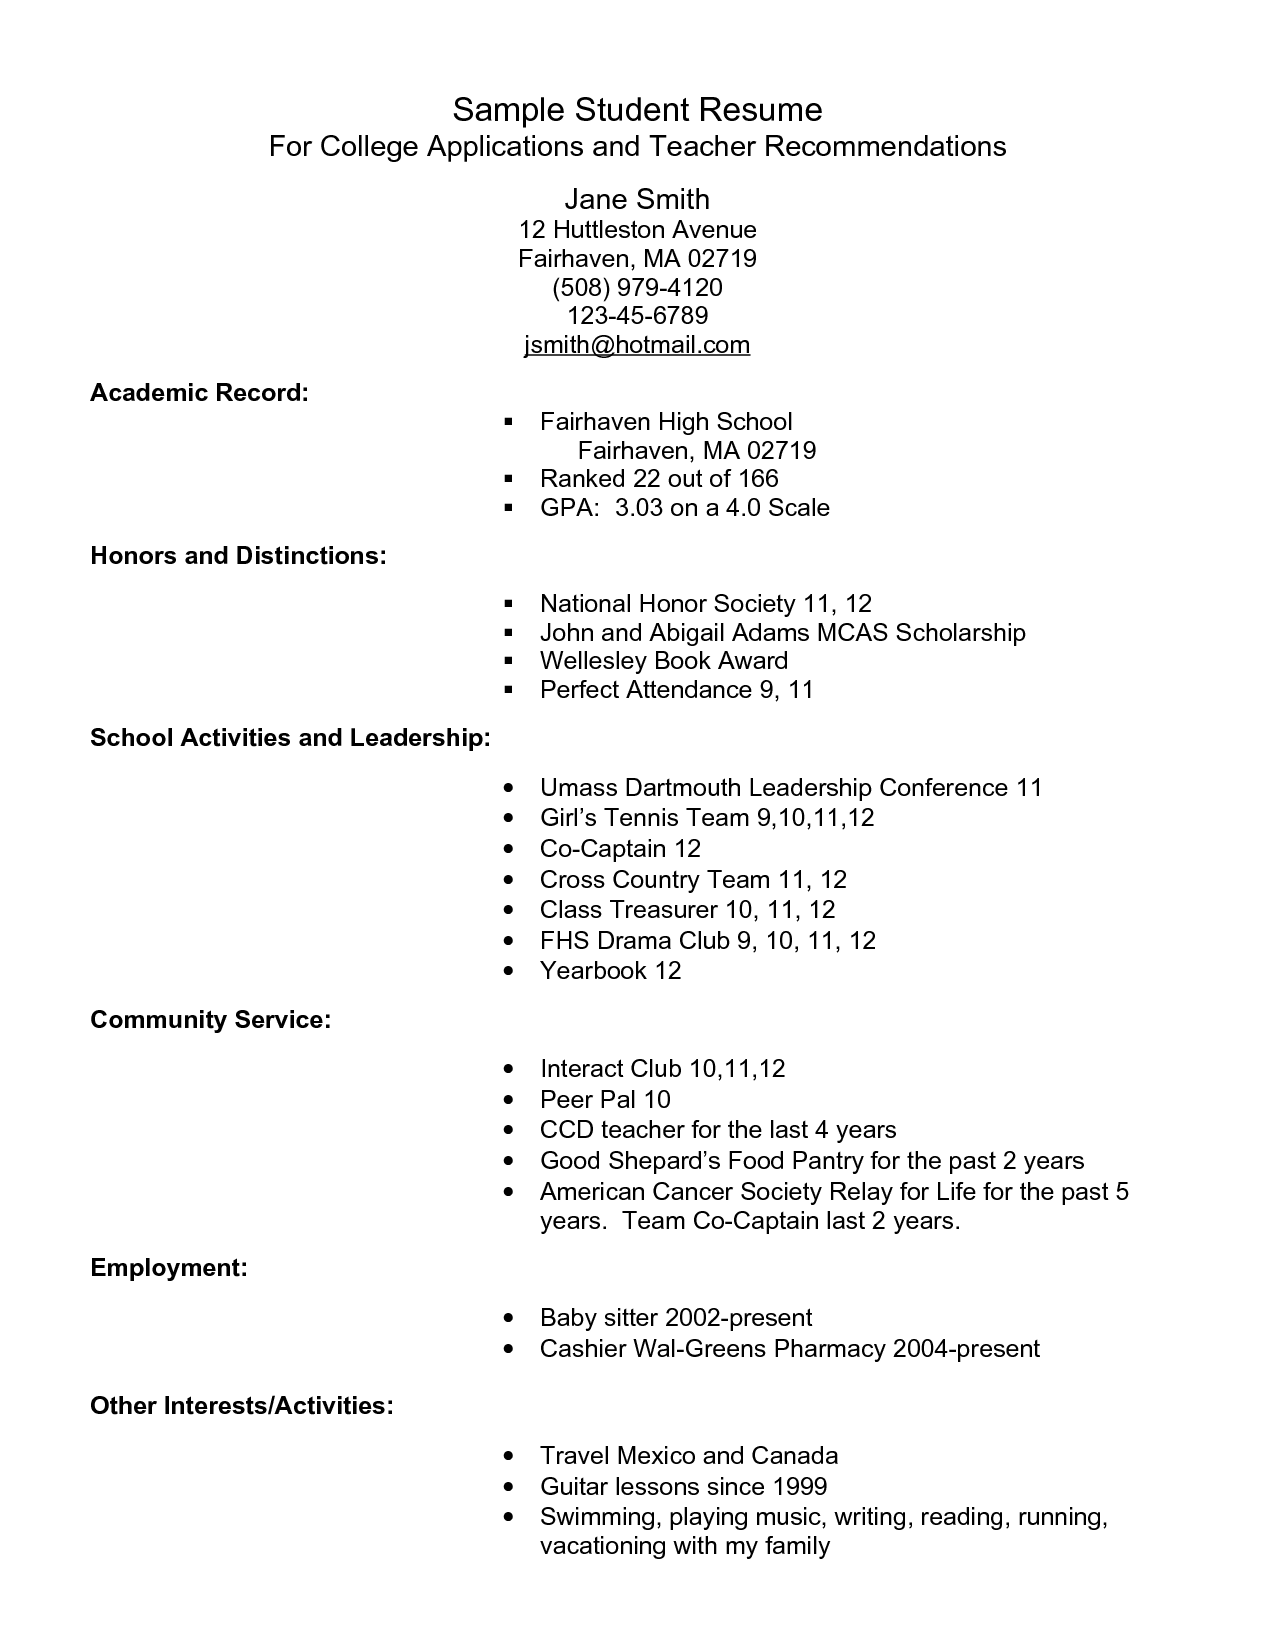 Writing A Resume Examples Example Resume For High School Students For College Applications